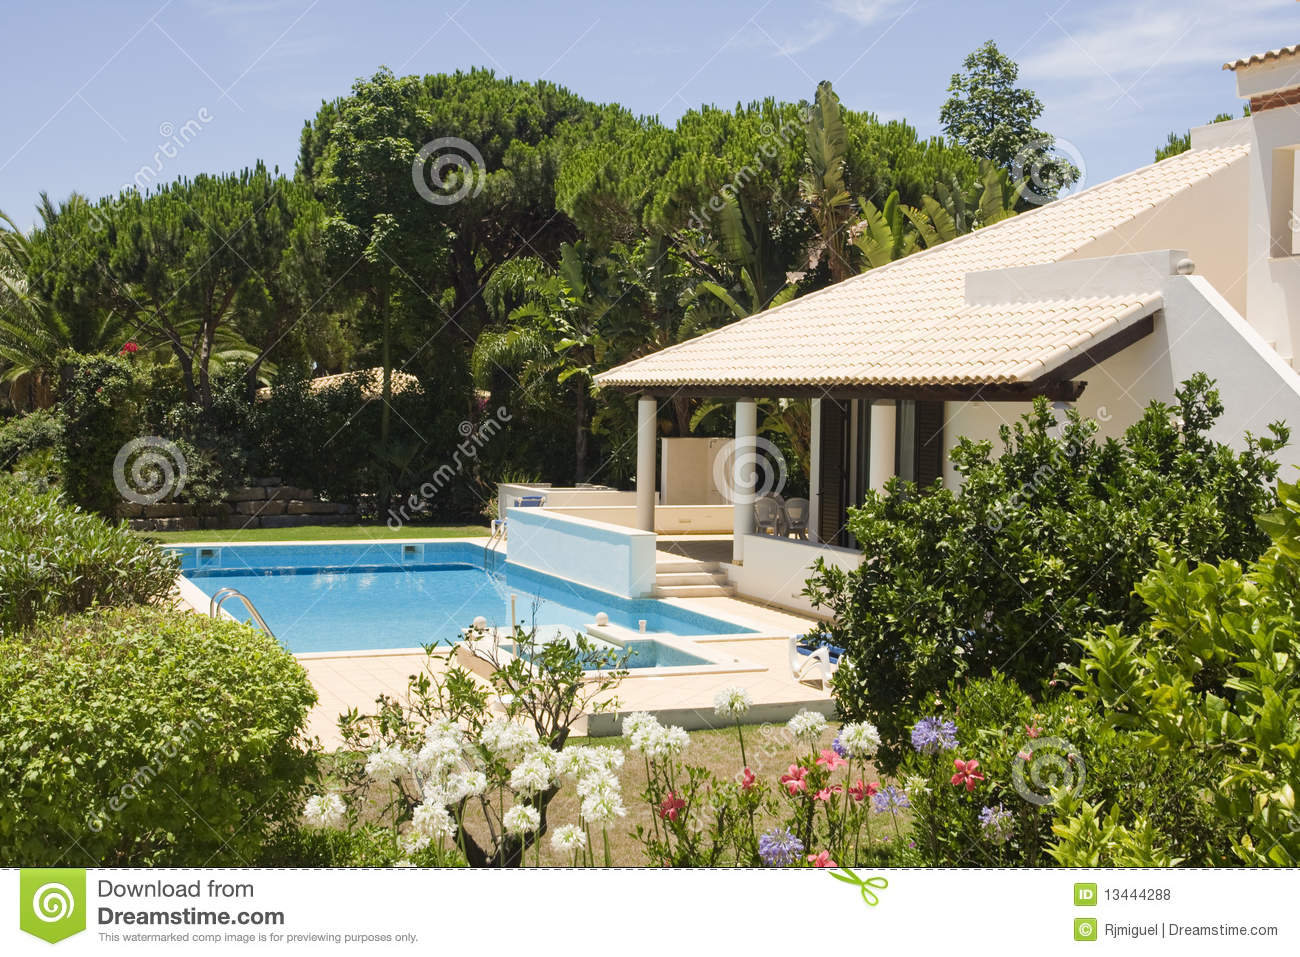 Beautiful villa with a healthy garden and pool